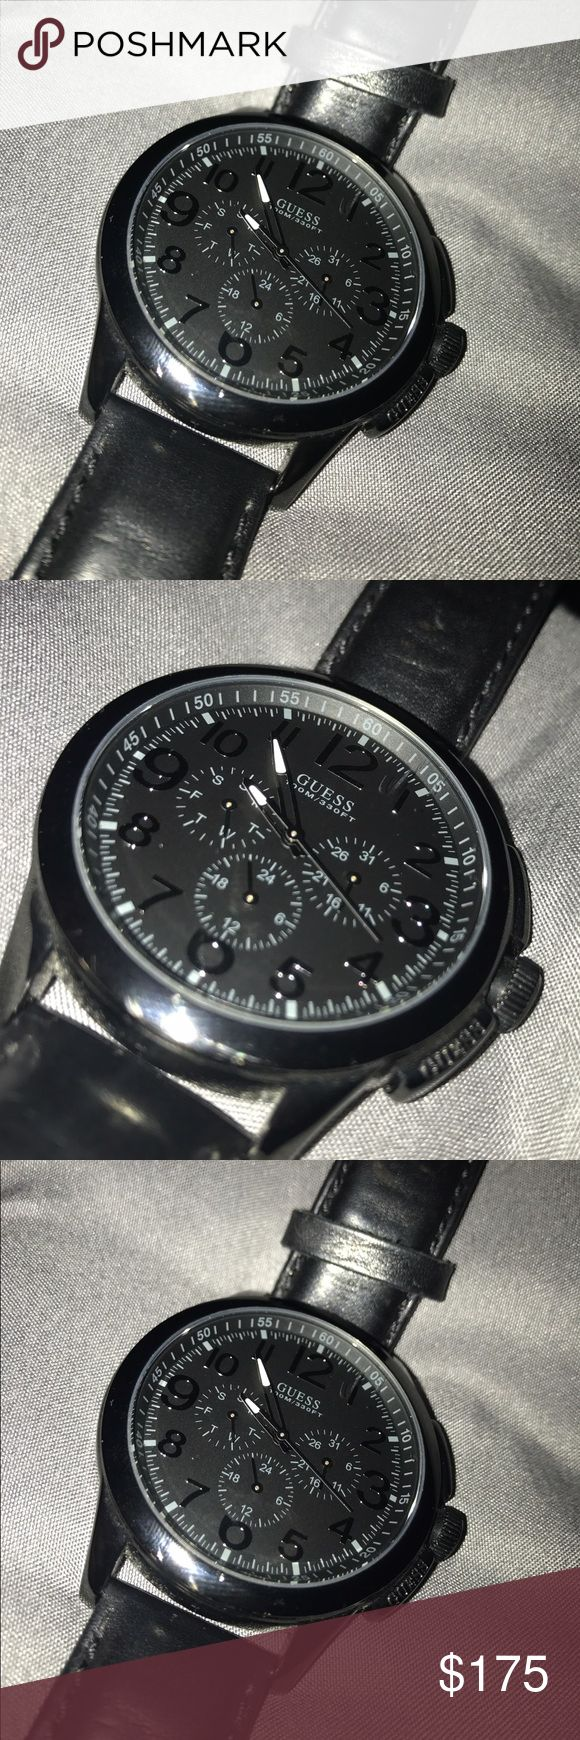 Men's waterproof black GUESS watch This watch is so perfect for everyday outfits! It is an all black men's GUESS watch. It is also waterproof. There is a little scratch between the 12 and the 1, but it is barley noticeable because the watch is all black. The watch was only worn 3 times. Has not been worn in 3 years so it needs a battery replacement. This is an awesome gift that goes with any outfit!  Guess Accessories Watches